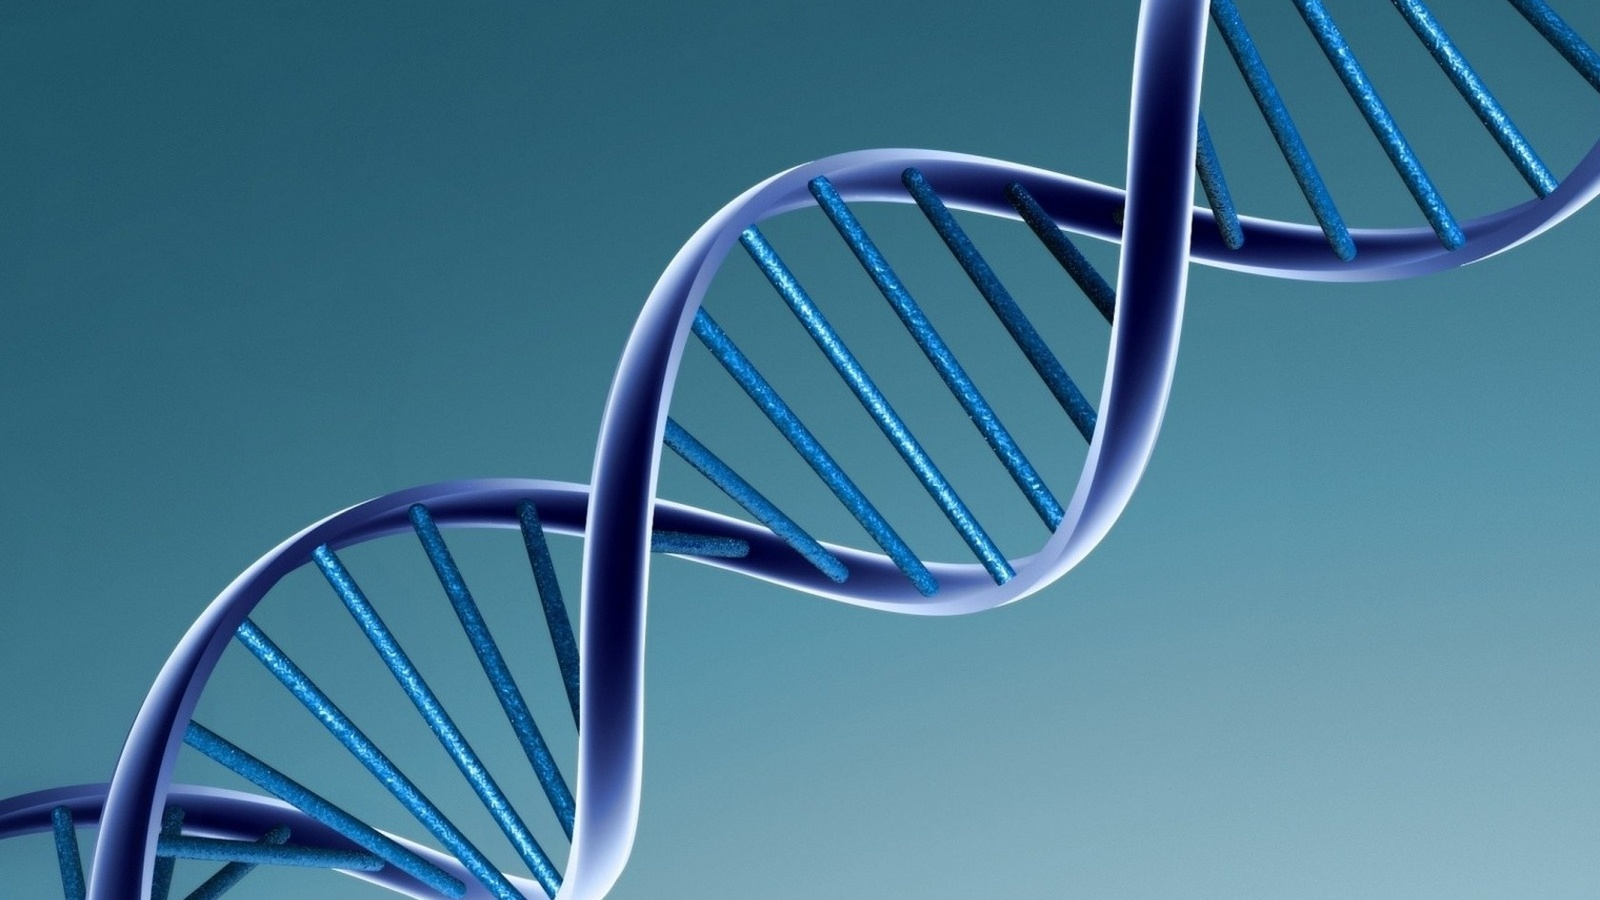 DNA Helix Wallpaper Pictures 6 Dna Helix Wallpaper Biological 1600x900